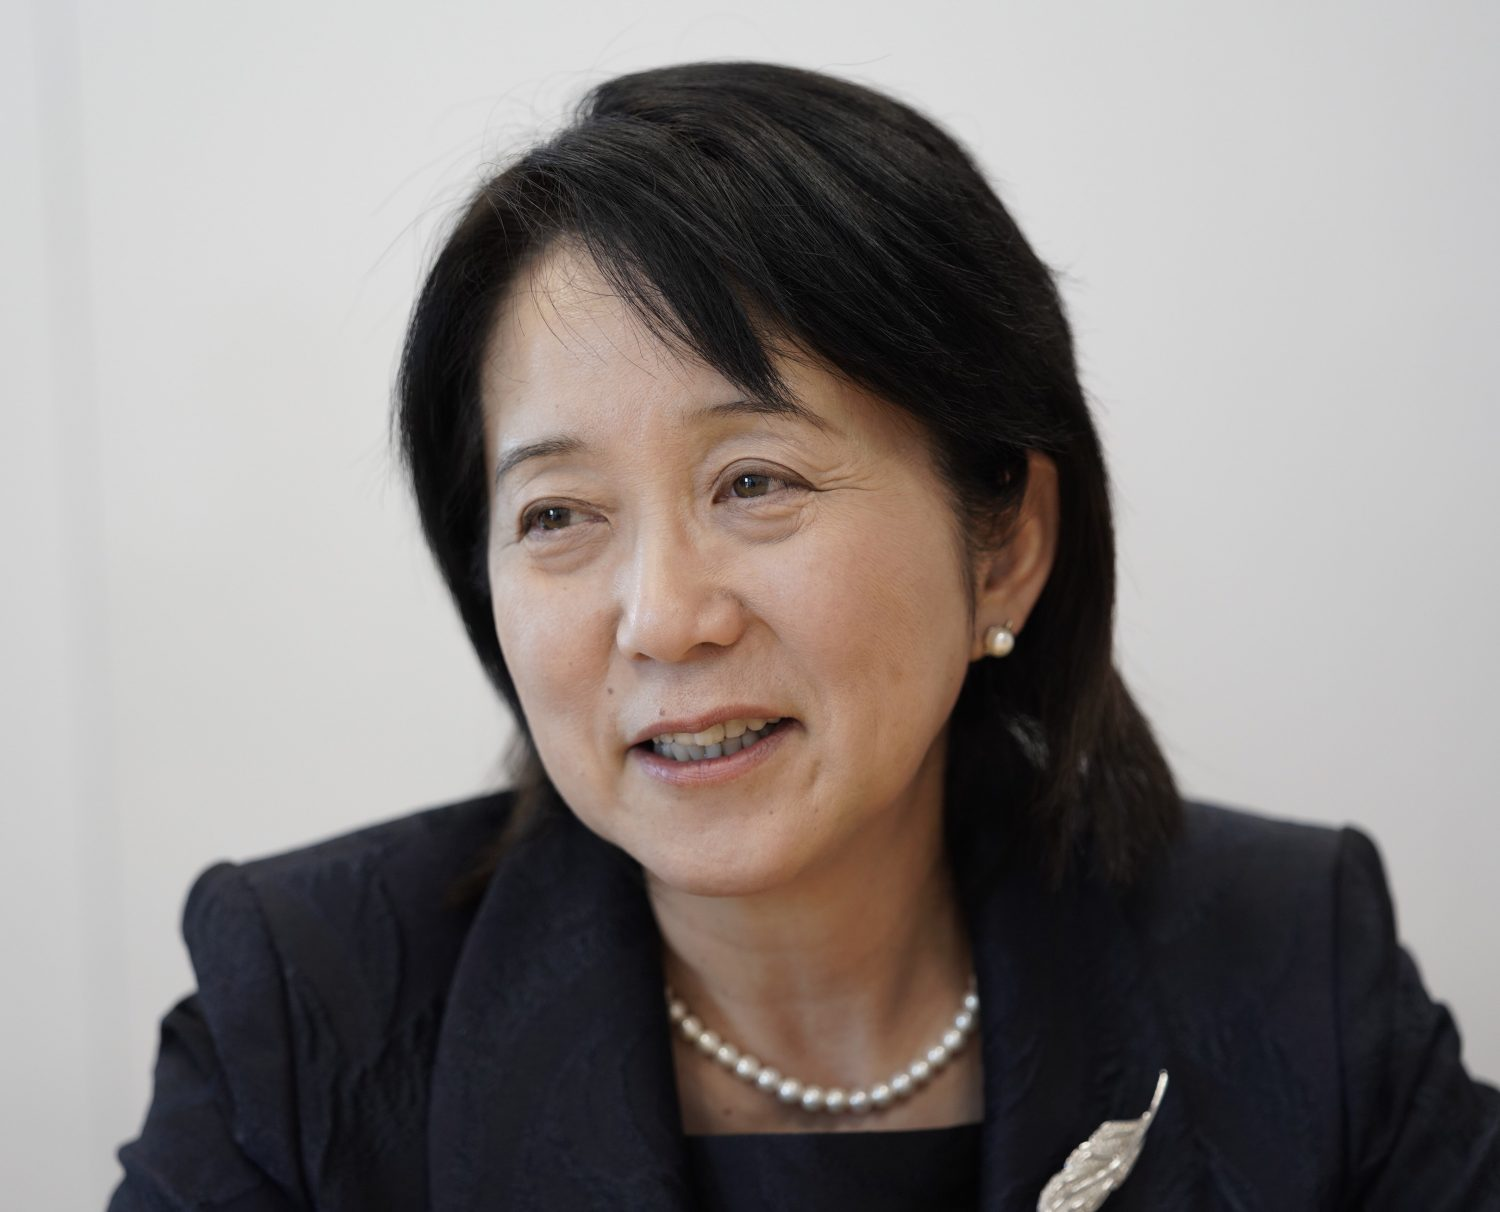 Regenerative medicine can completely transform medical care and Japan is playing a leading role in this effort, according to Masayo Takahashi